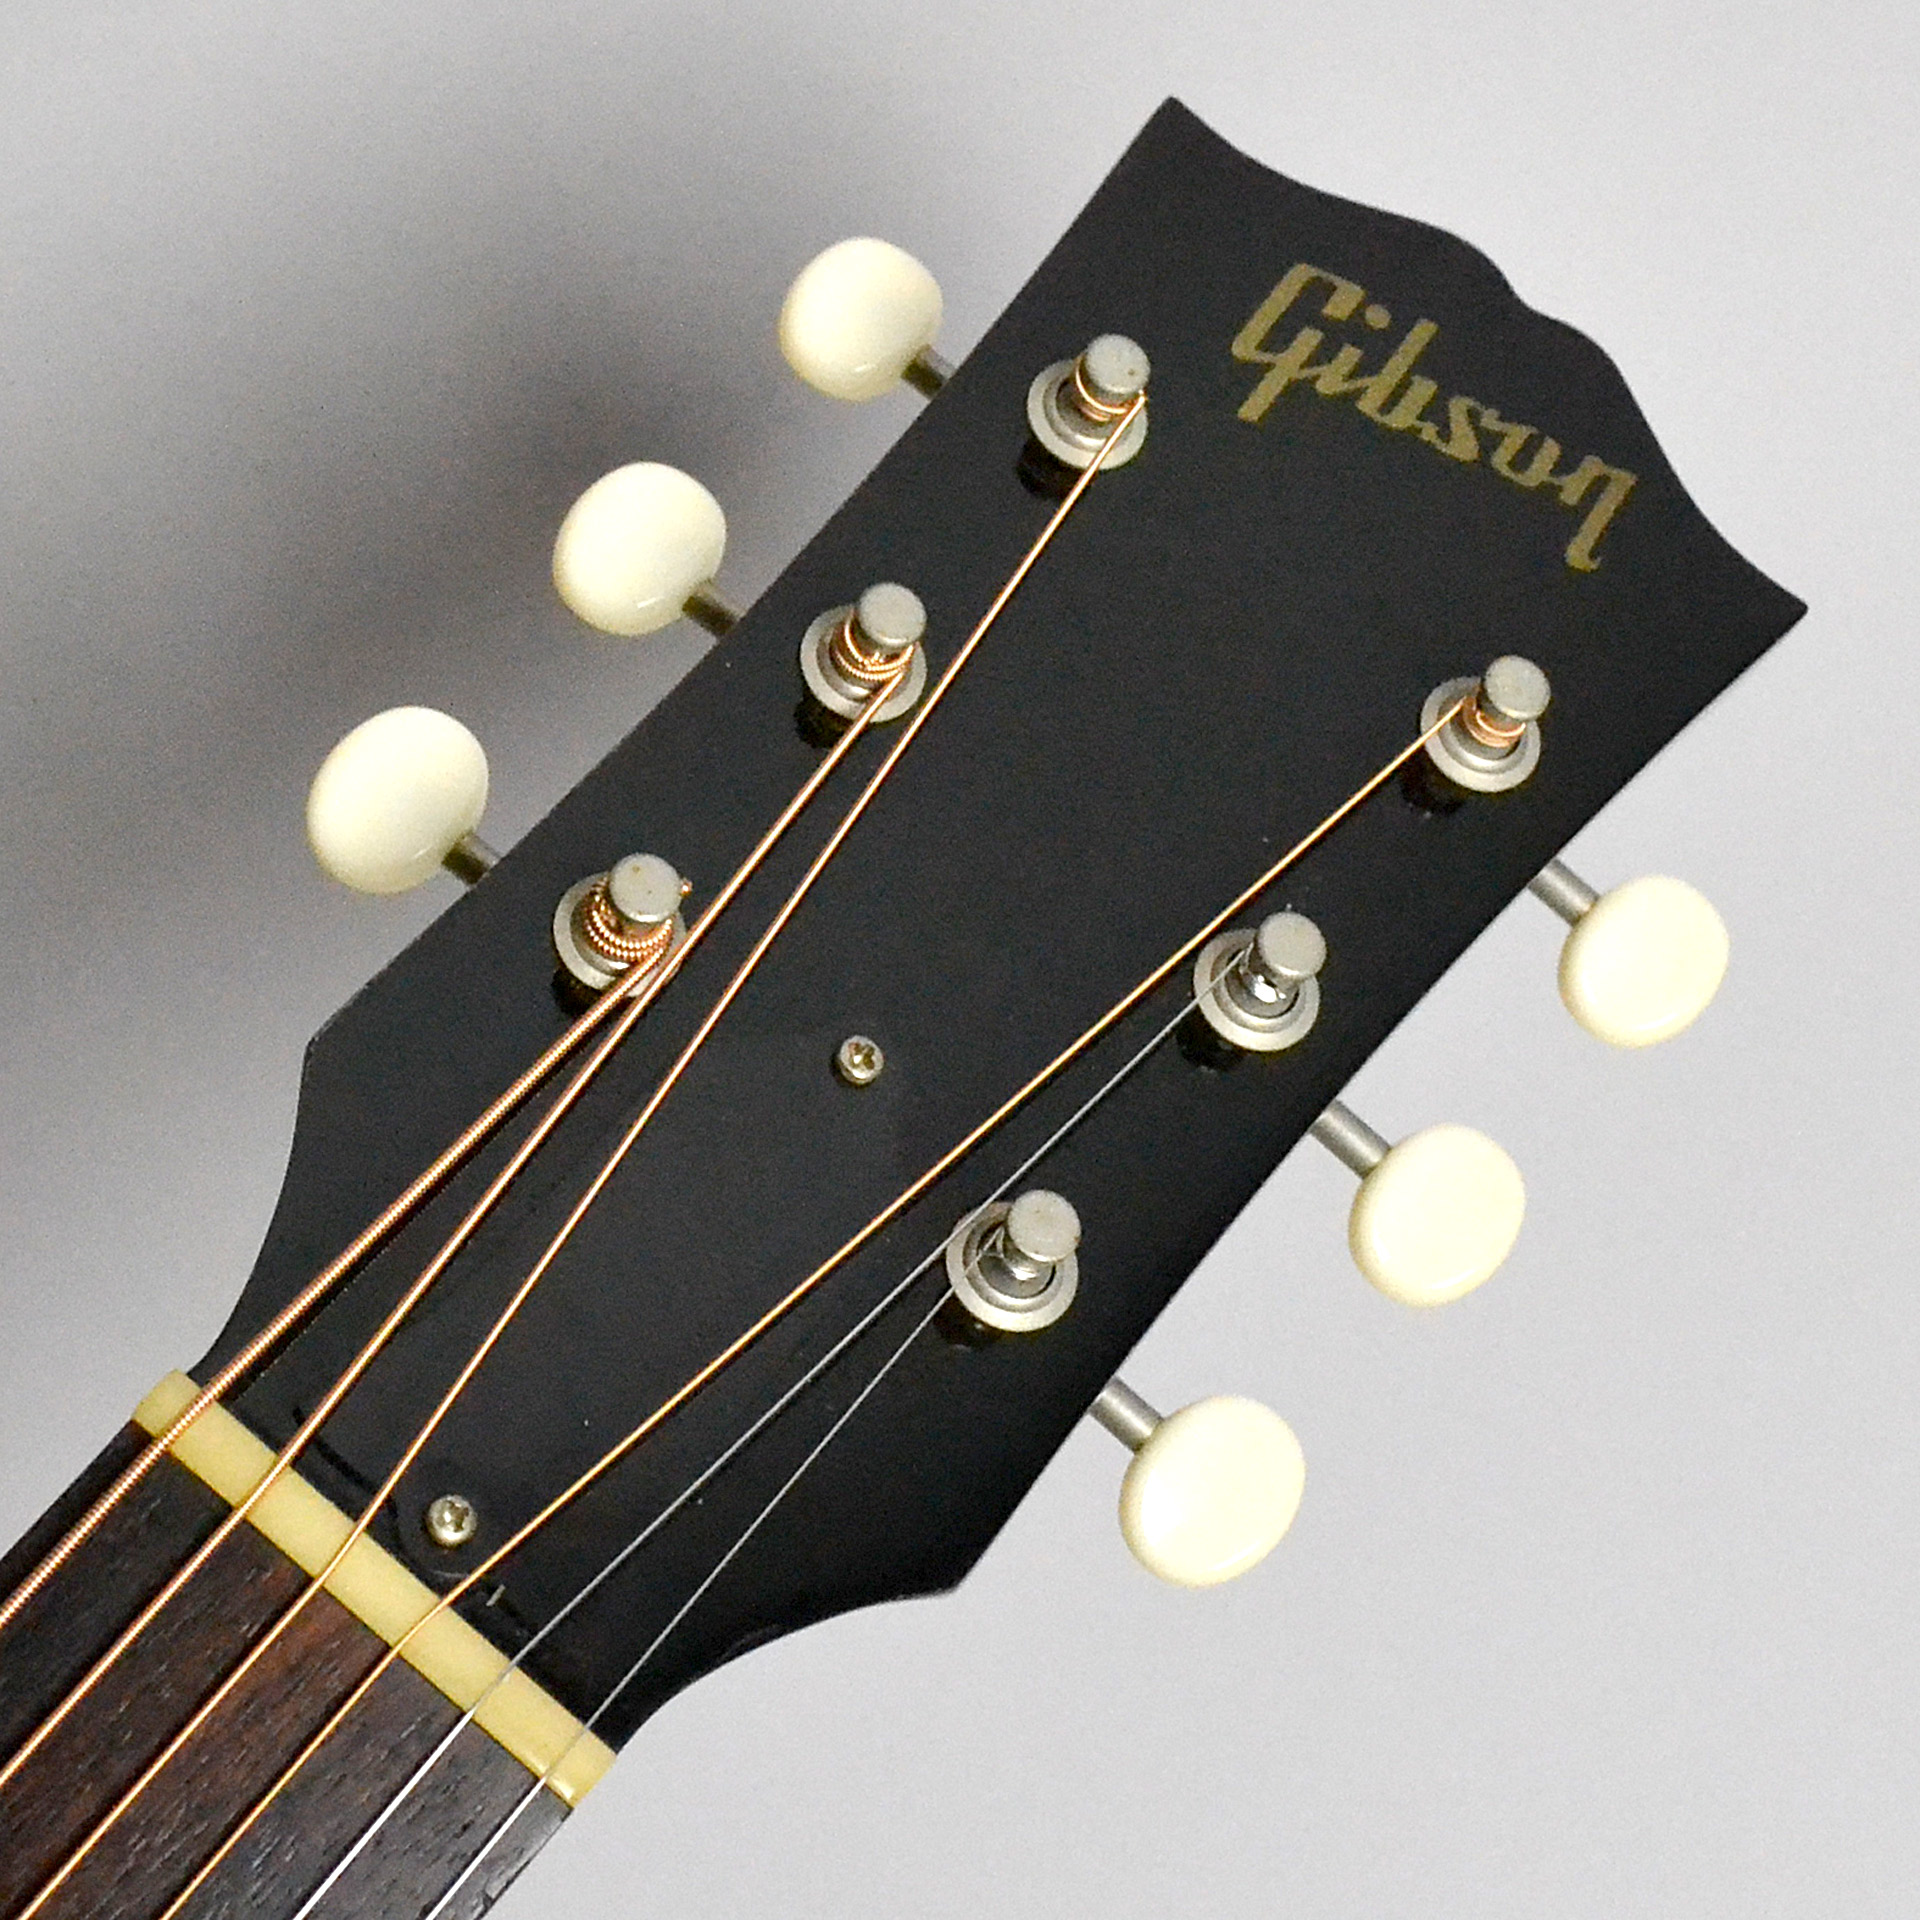 Gibson 1960's J-45  VCS【USED】のヘッド画像